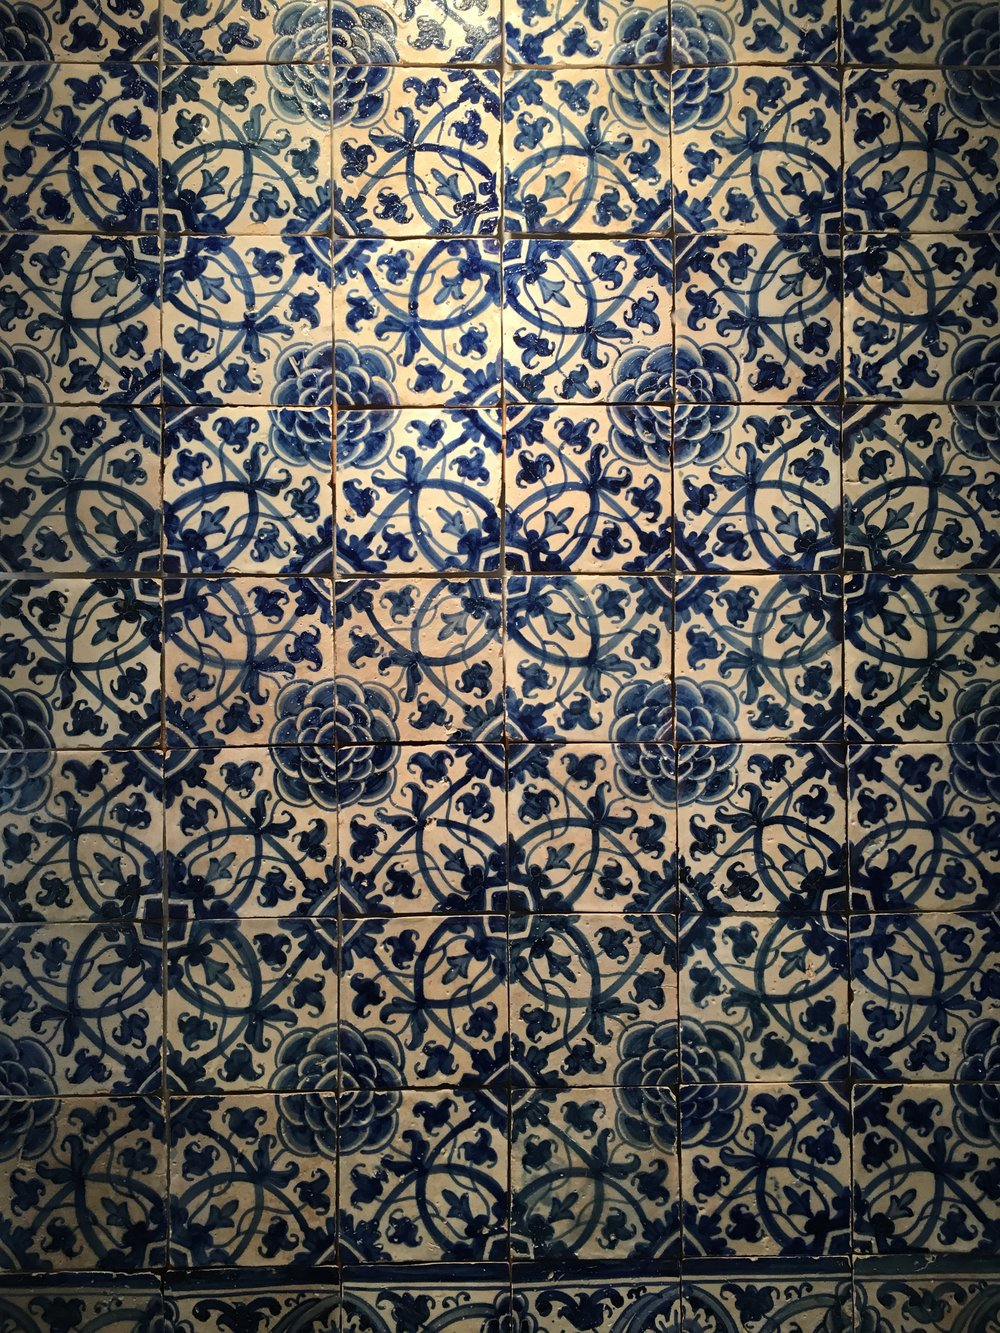 Another panel of 1660-1680 camellia-inspired tiles in blue and white in the Museu Nacional de Azulejo, Lisboa. (photography J. Cook)